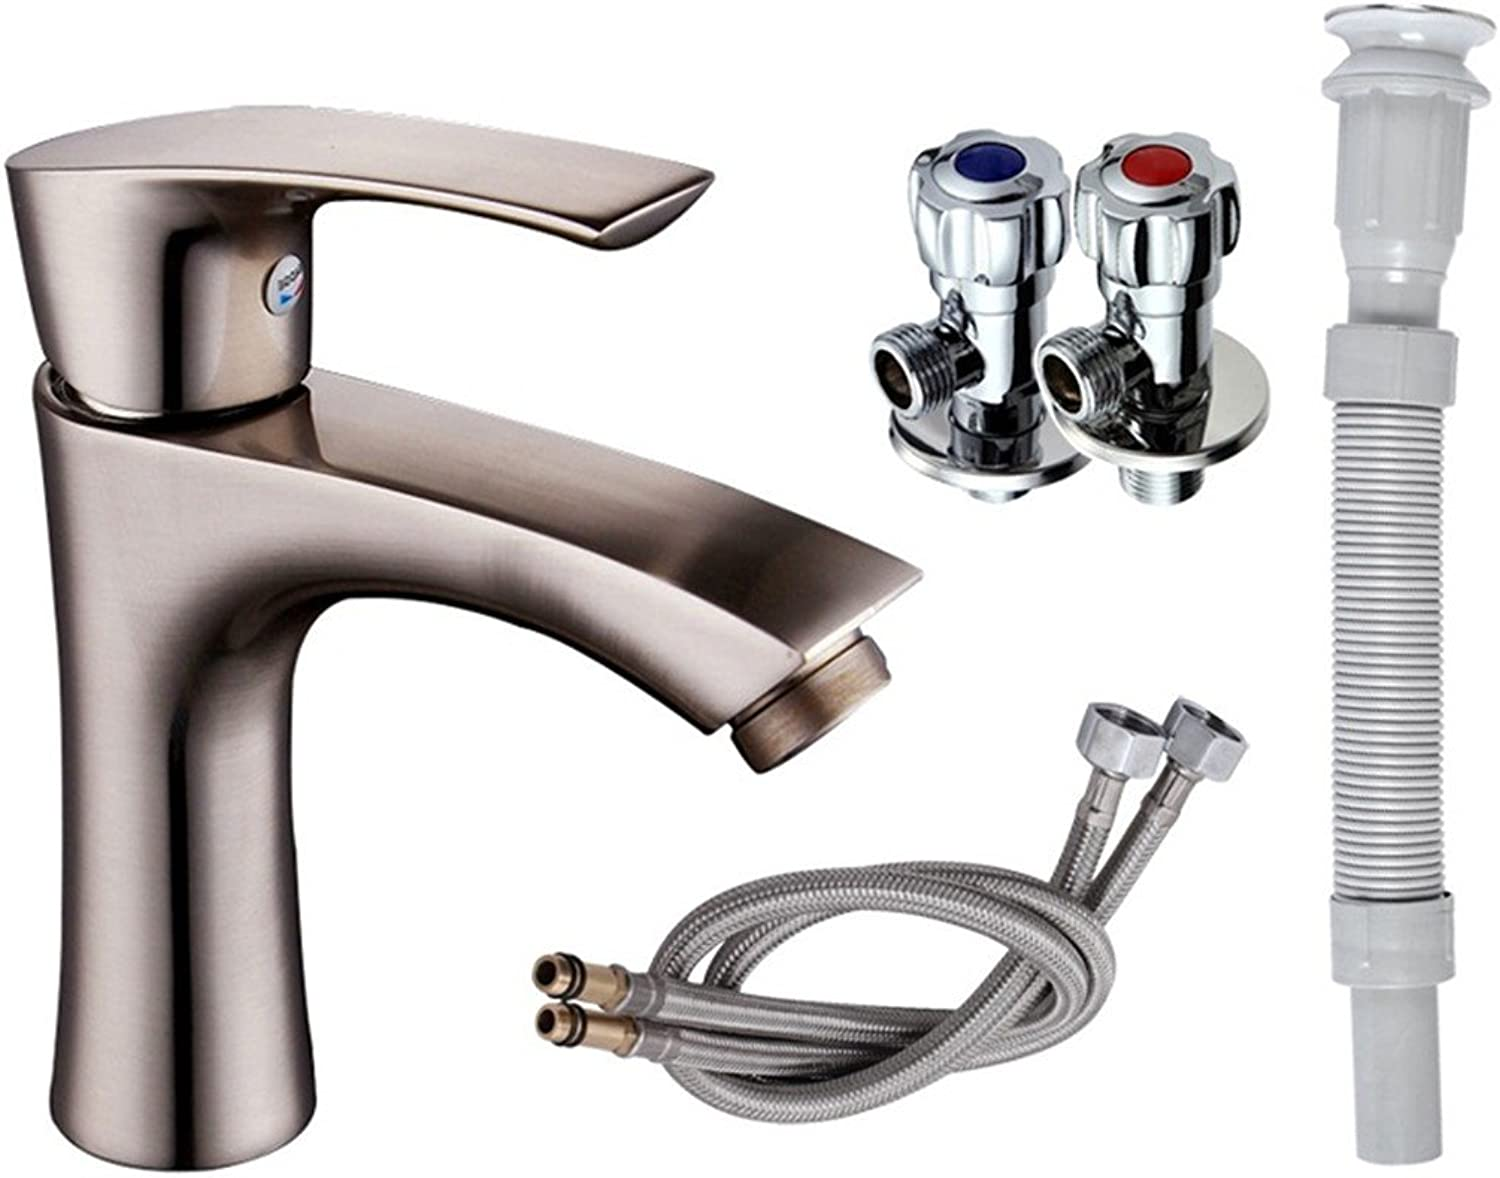 Hlluya Professional The whale full Brass Body, hot and cold water mixer SINGLE HOLE WASH-hand washing your face with the following basin faucet, brass faucets B+2 root water inlet valve 2 + 2 corners